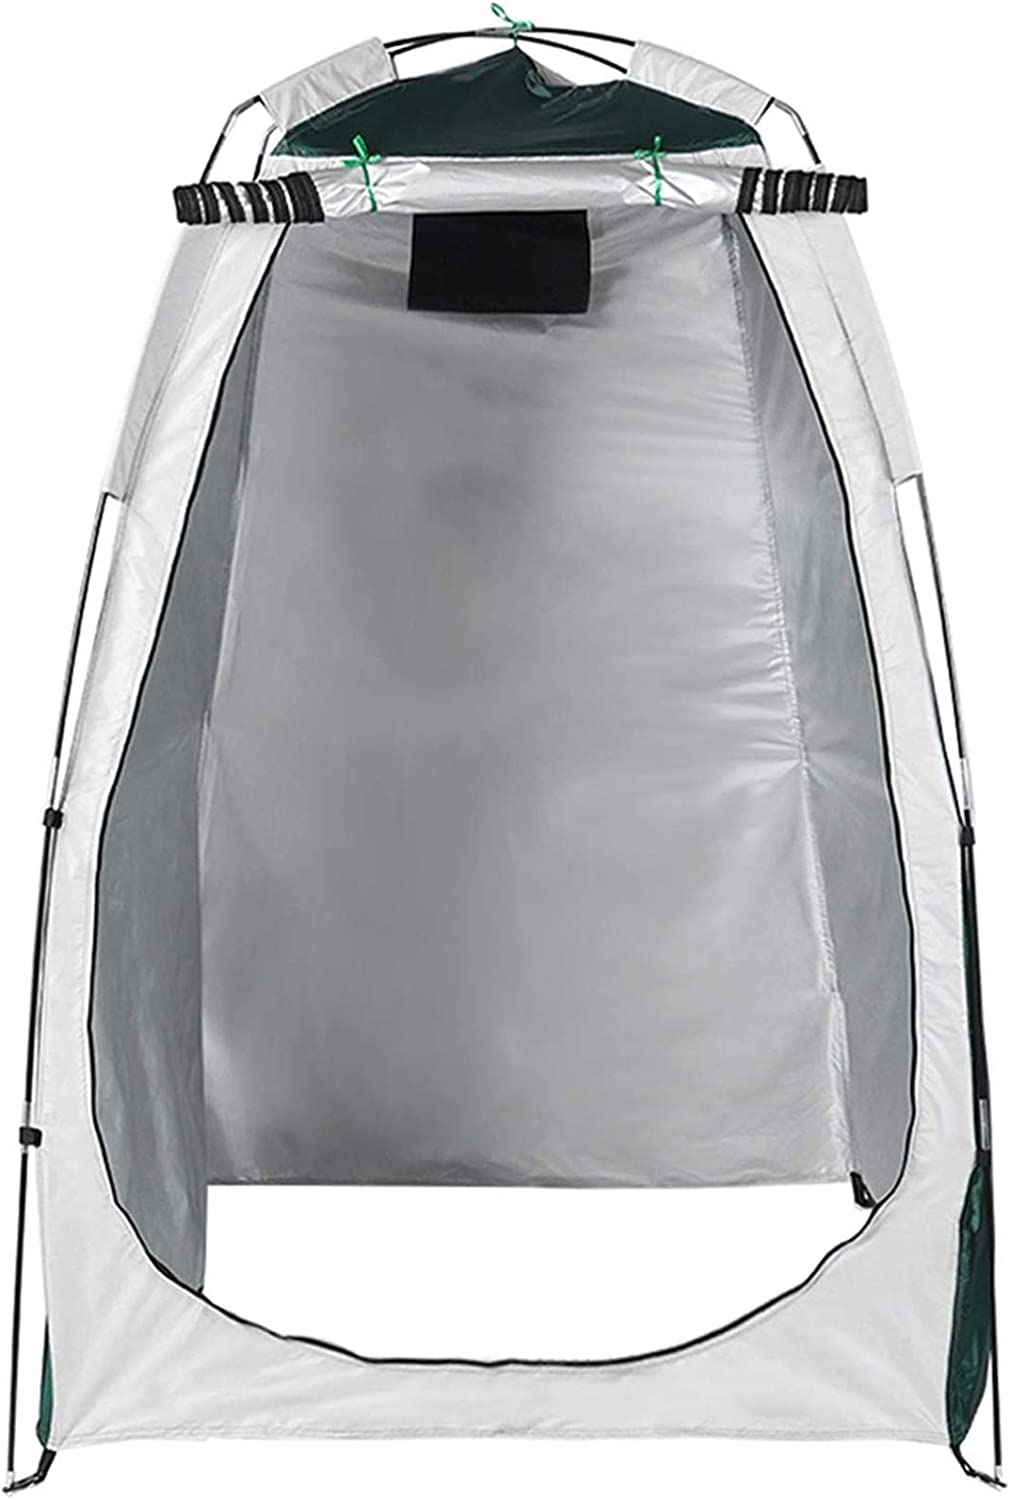 ZJDU Tents for Camping Outdoor Miami Mall Portable Tent Shower Instant 2021 model